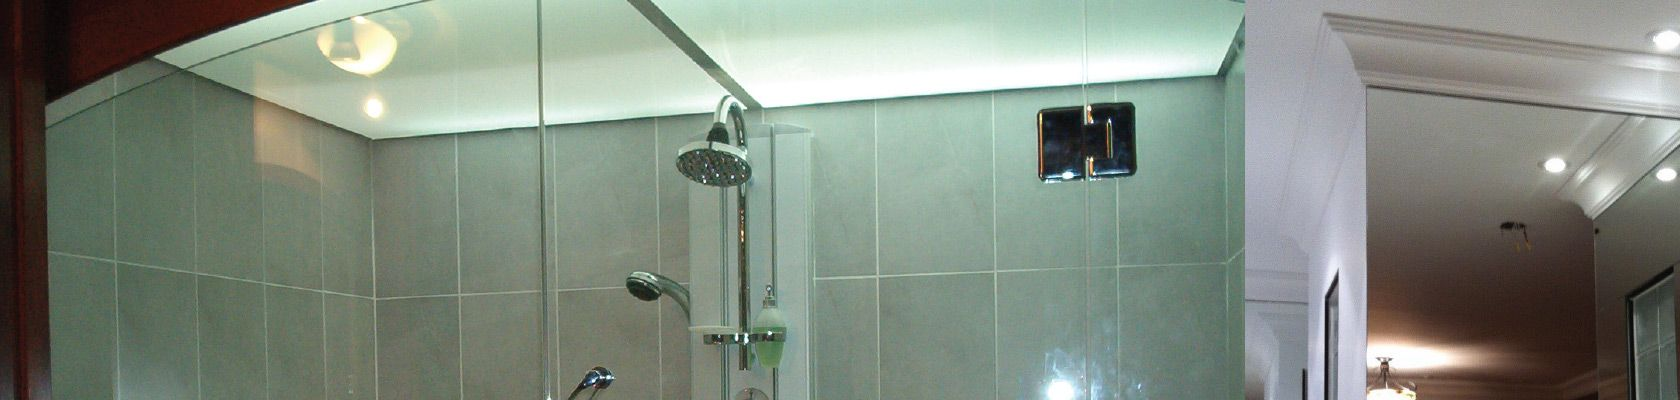 Glass shower and mirrors